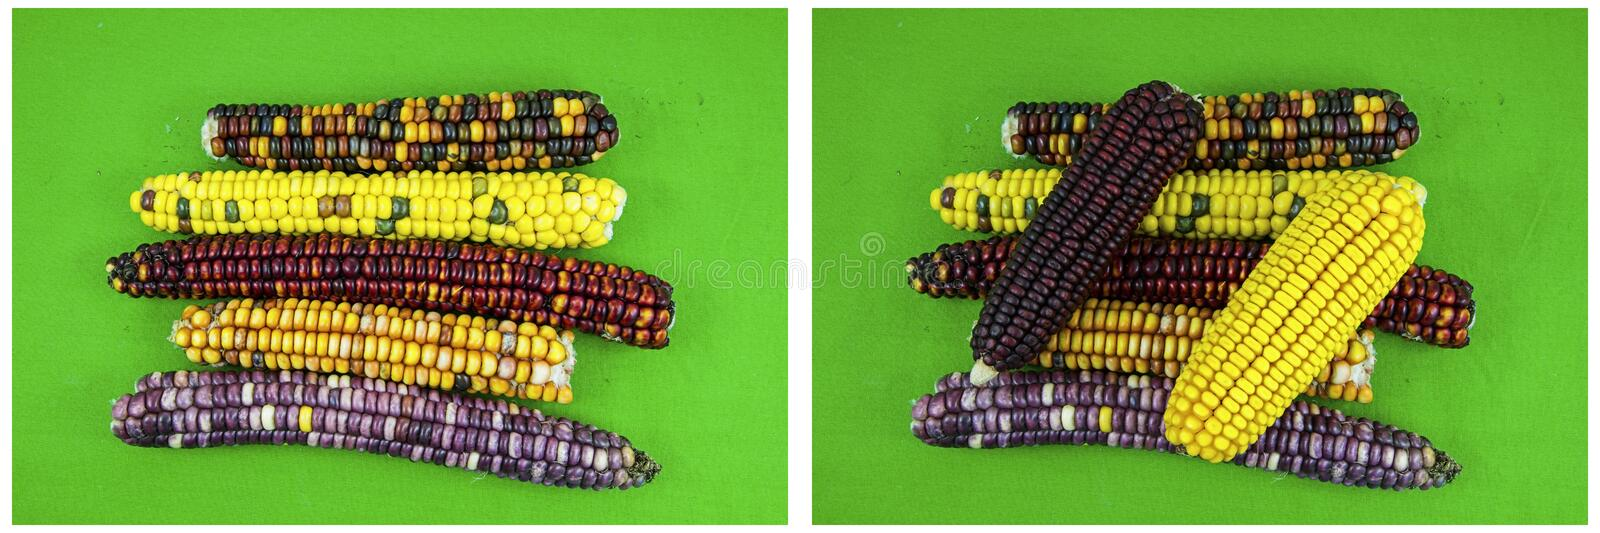 Corn cobs maize indian colors green background collage stock photo